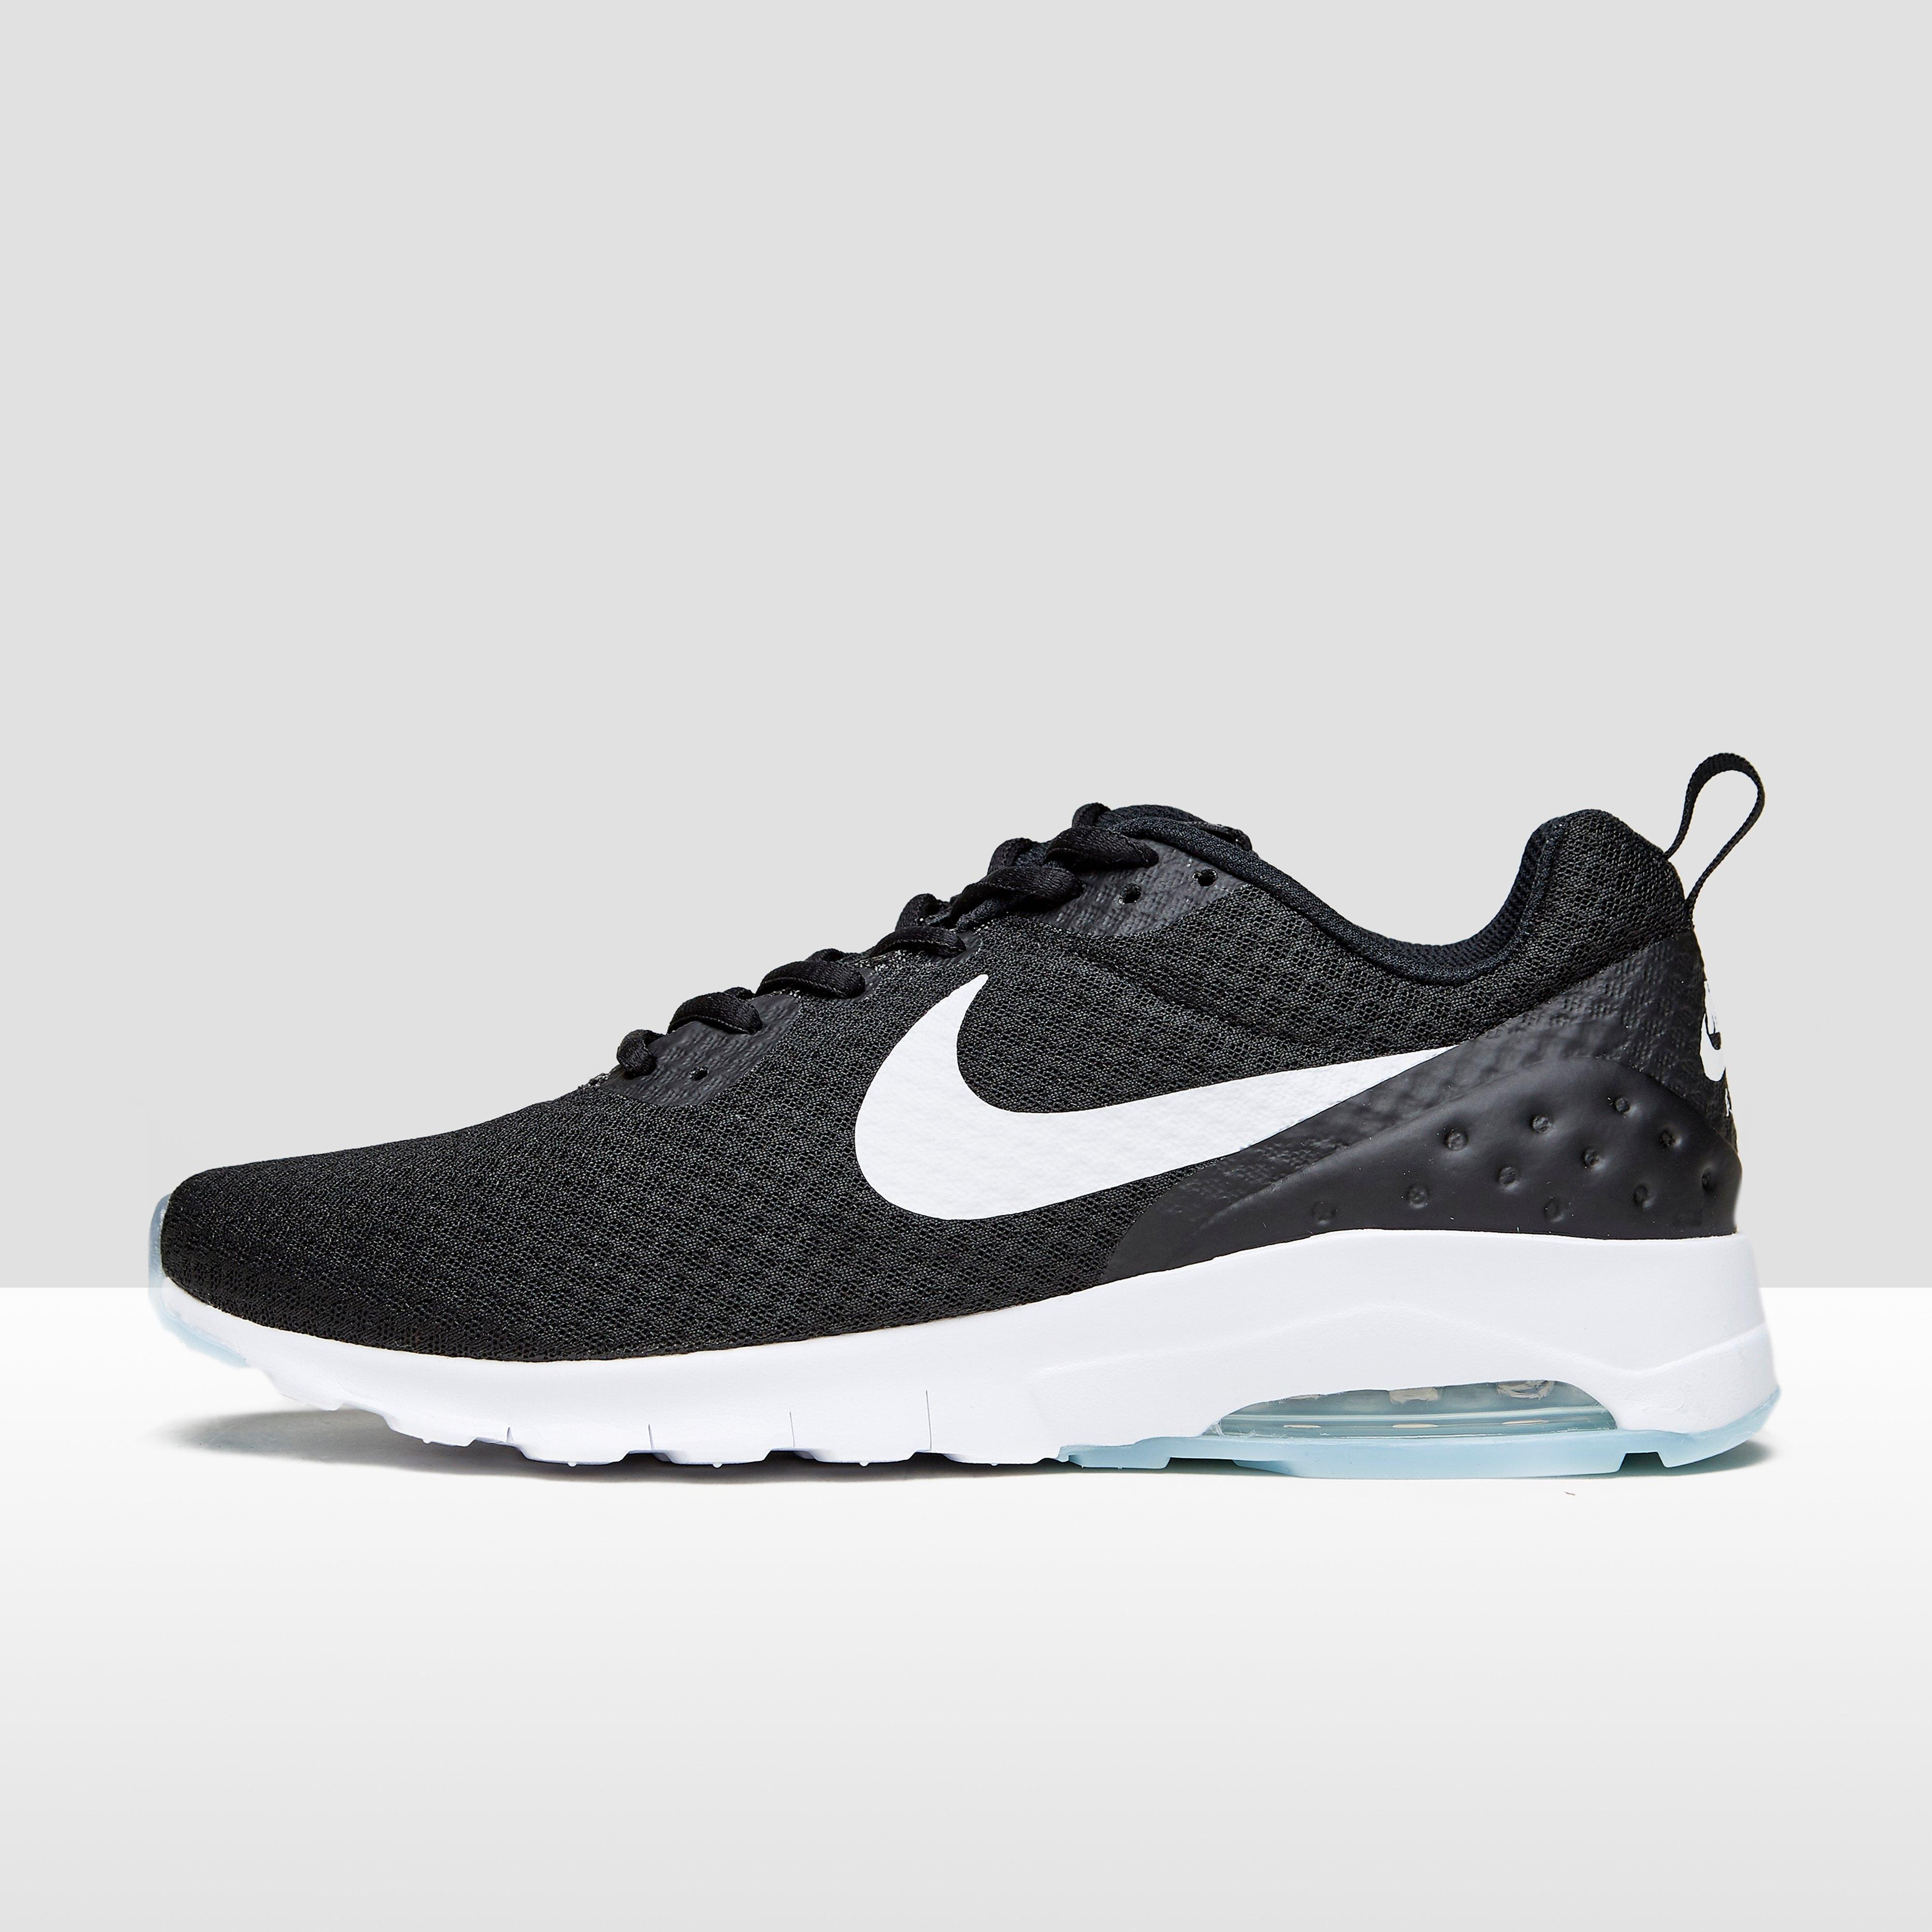 Nike - Baskets Air Max Mouvement Faible Course - Dames - Baskets - Noir - 39 Y0PS8eal0c